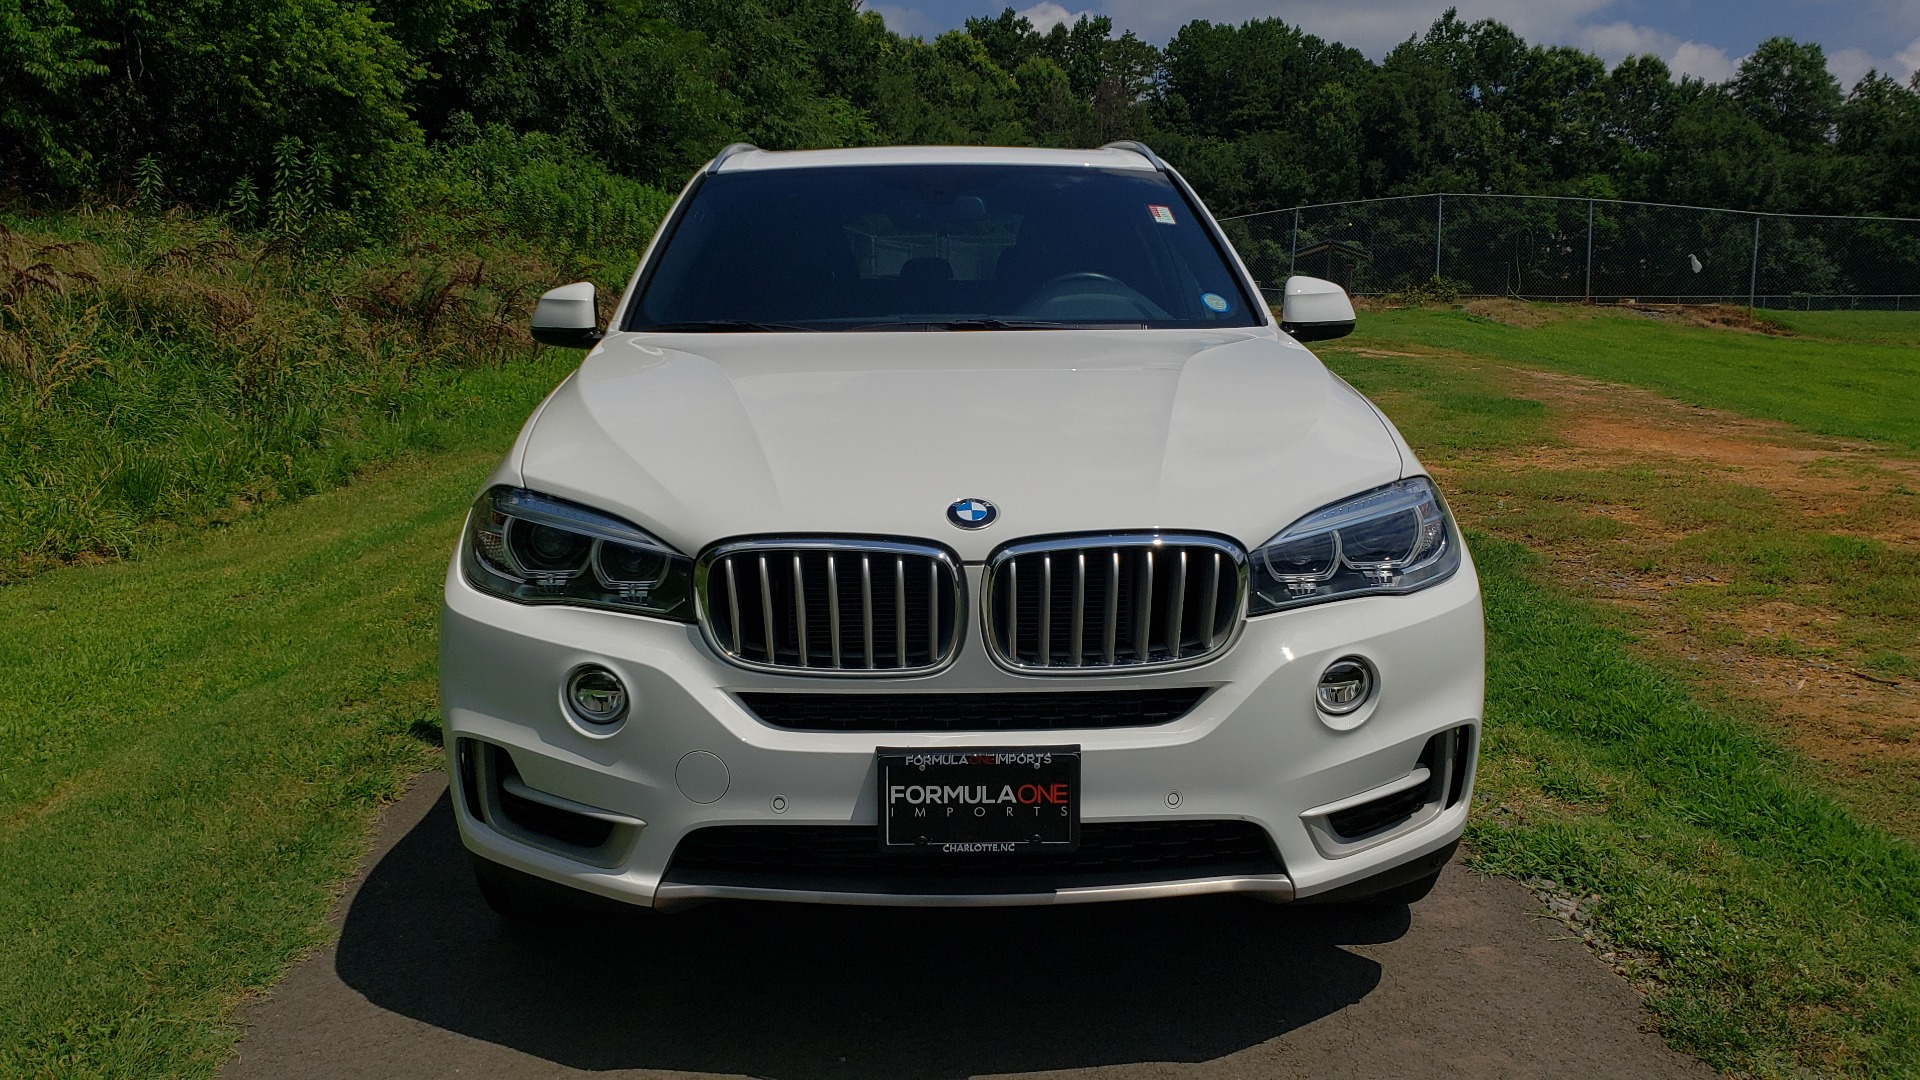 Used 2017 BMW X5 XDRIVE35I / NAV / SUNROOF / RUNNING BOARDS / REARVIEW for sale $33,995 at Formula Imports in Charlotte NC 28227 6